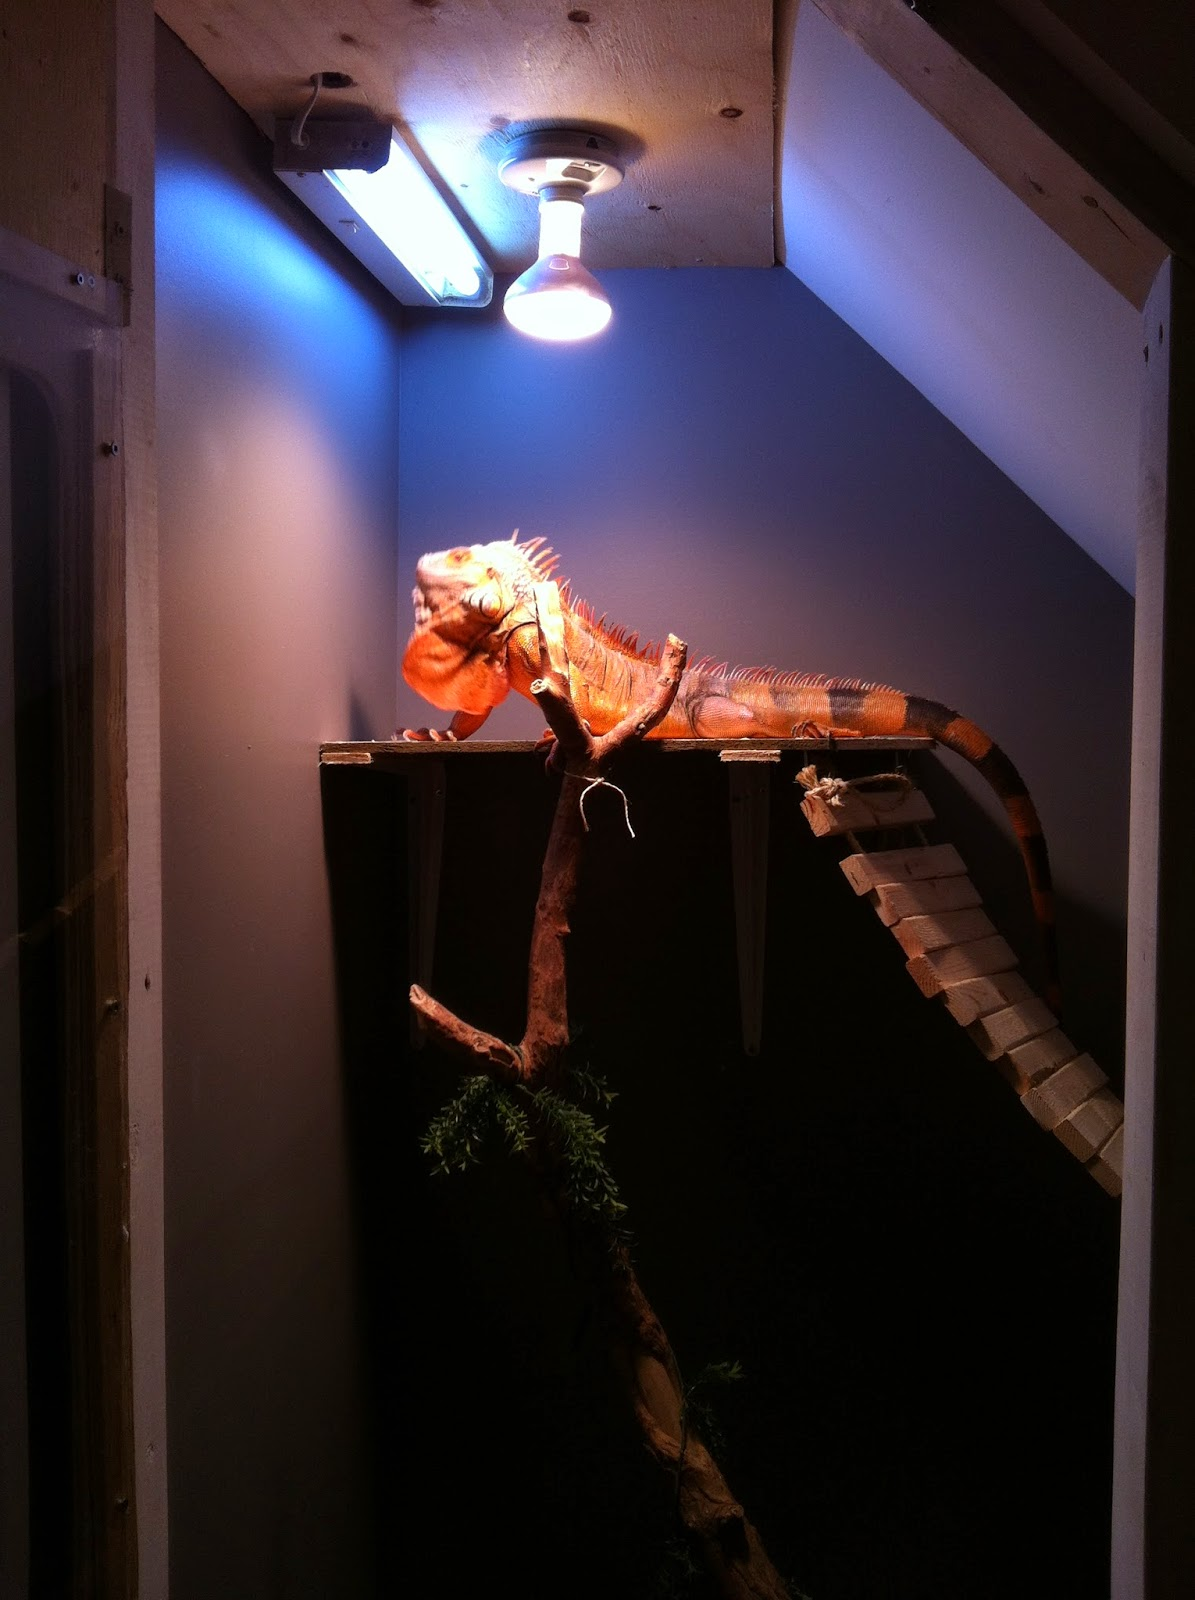 So this is the light set up that I\u0027m using for his new enclosure if you\u0027d like to learn how to easily put a built in heat fixture click & ONTARIO IGUANAS: UNDER THE STAIRS IGUANA ENCLOSURE